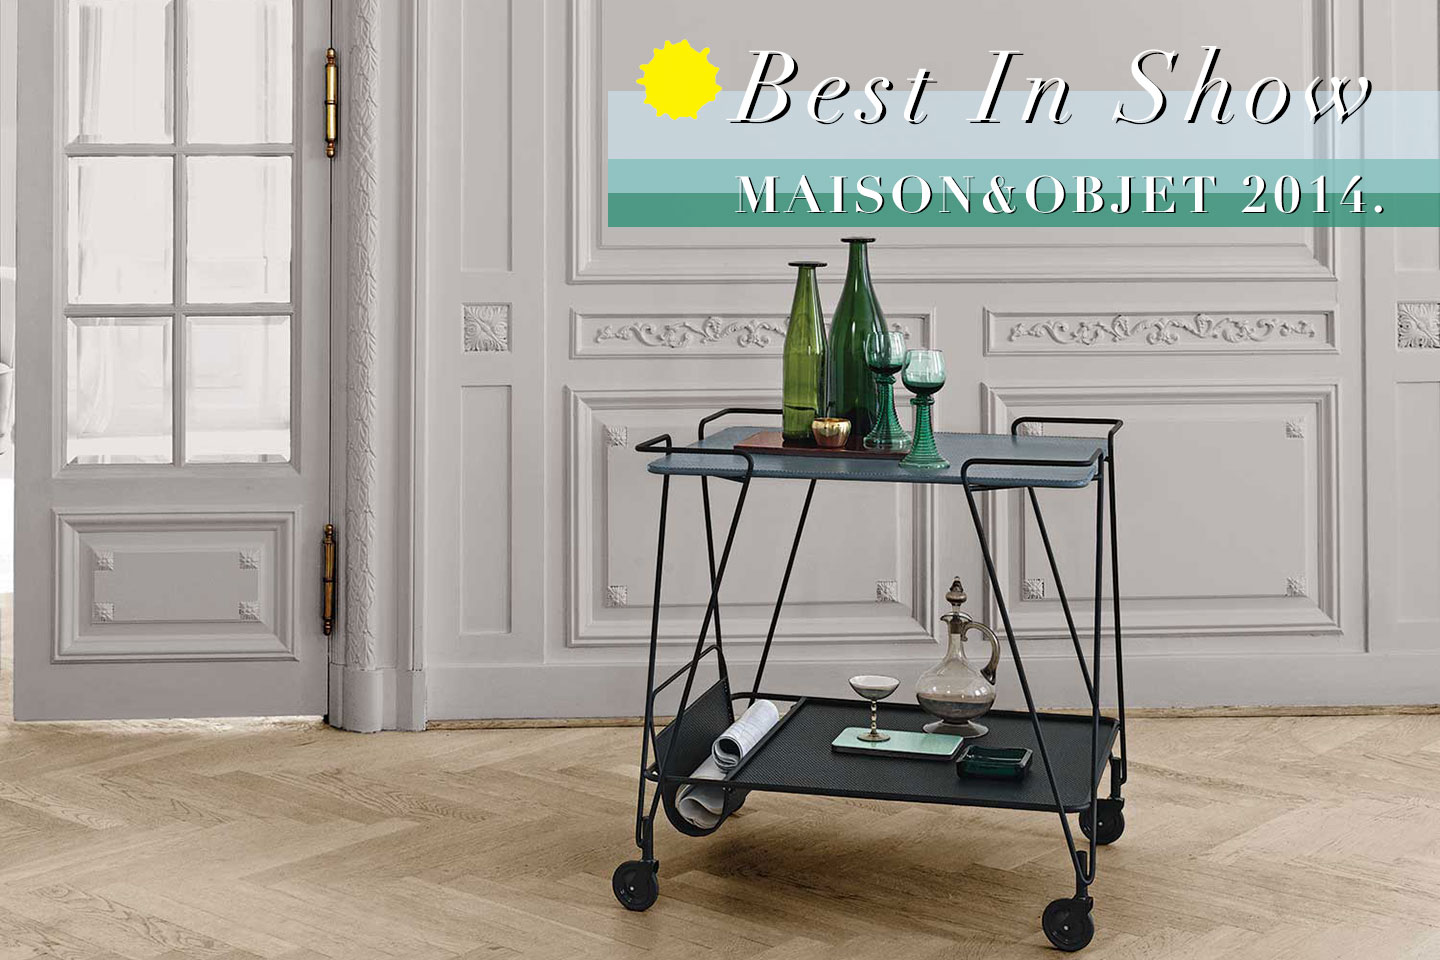 Maison&Objet 2014: Best In Show // Furniture, Lighting & Accessories.